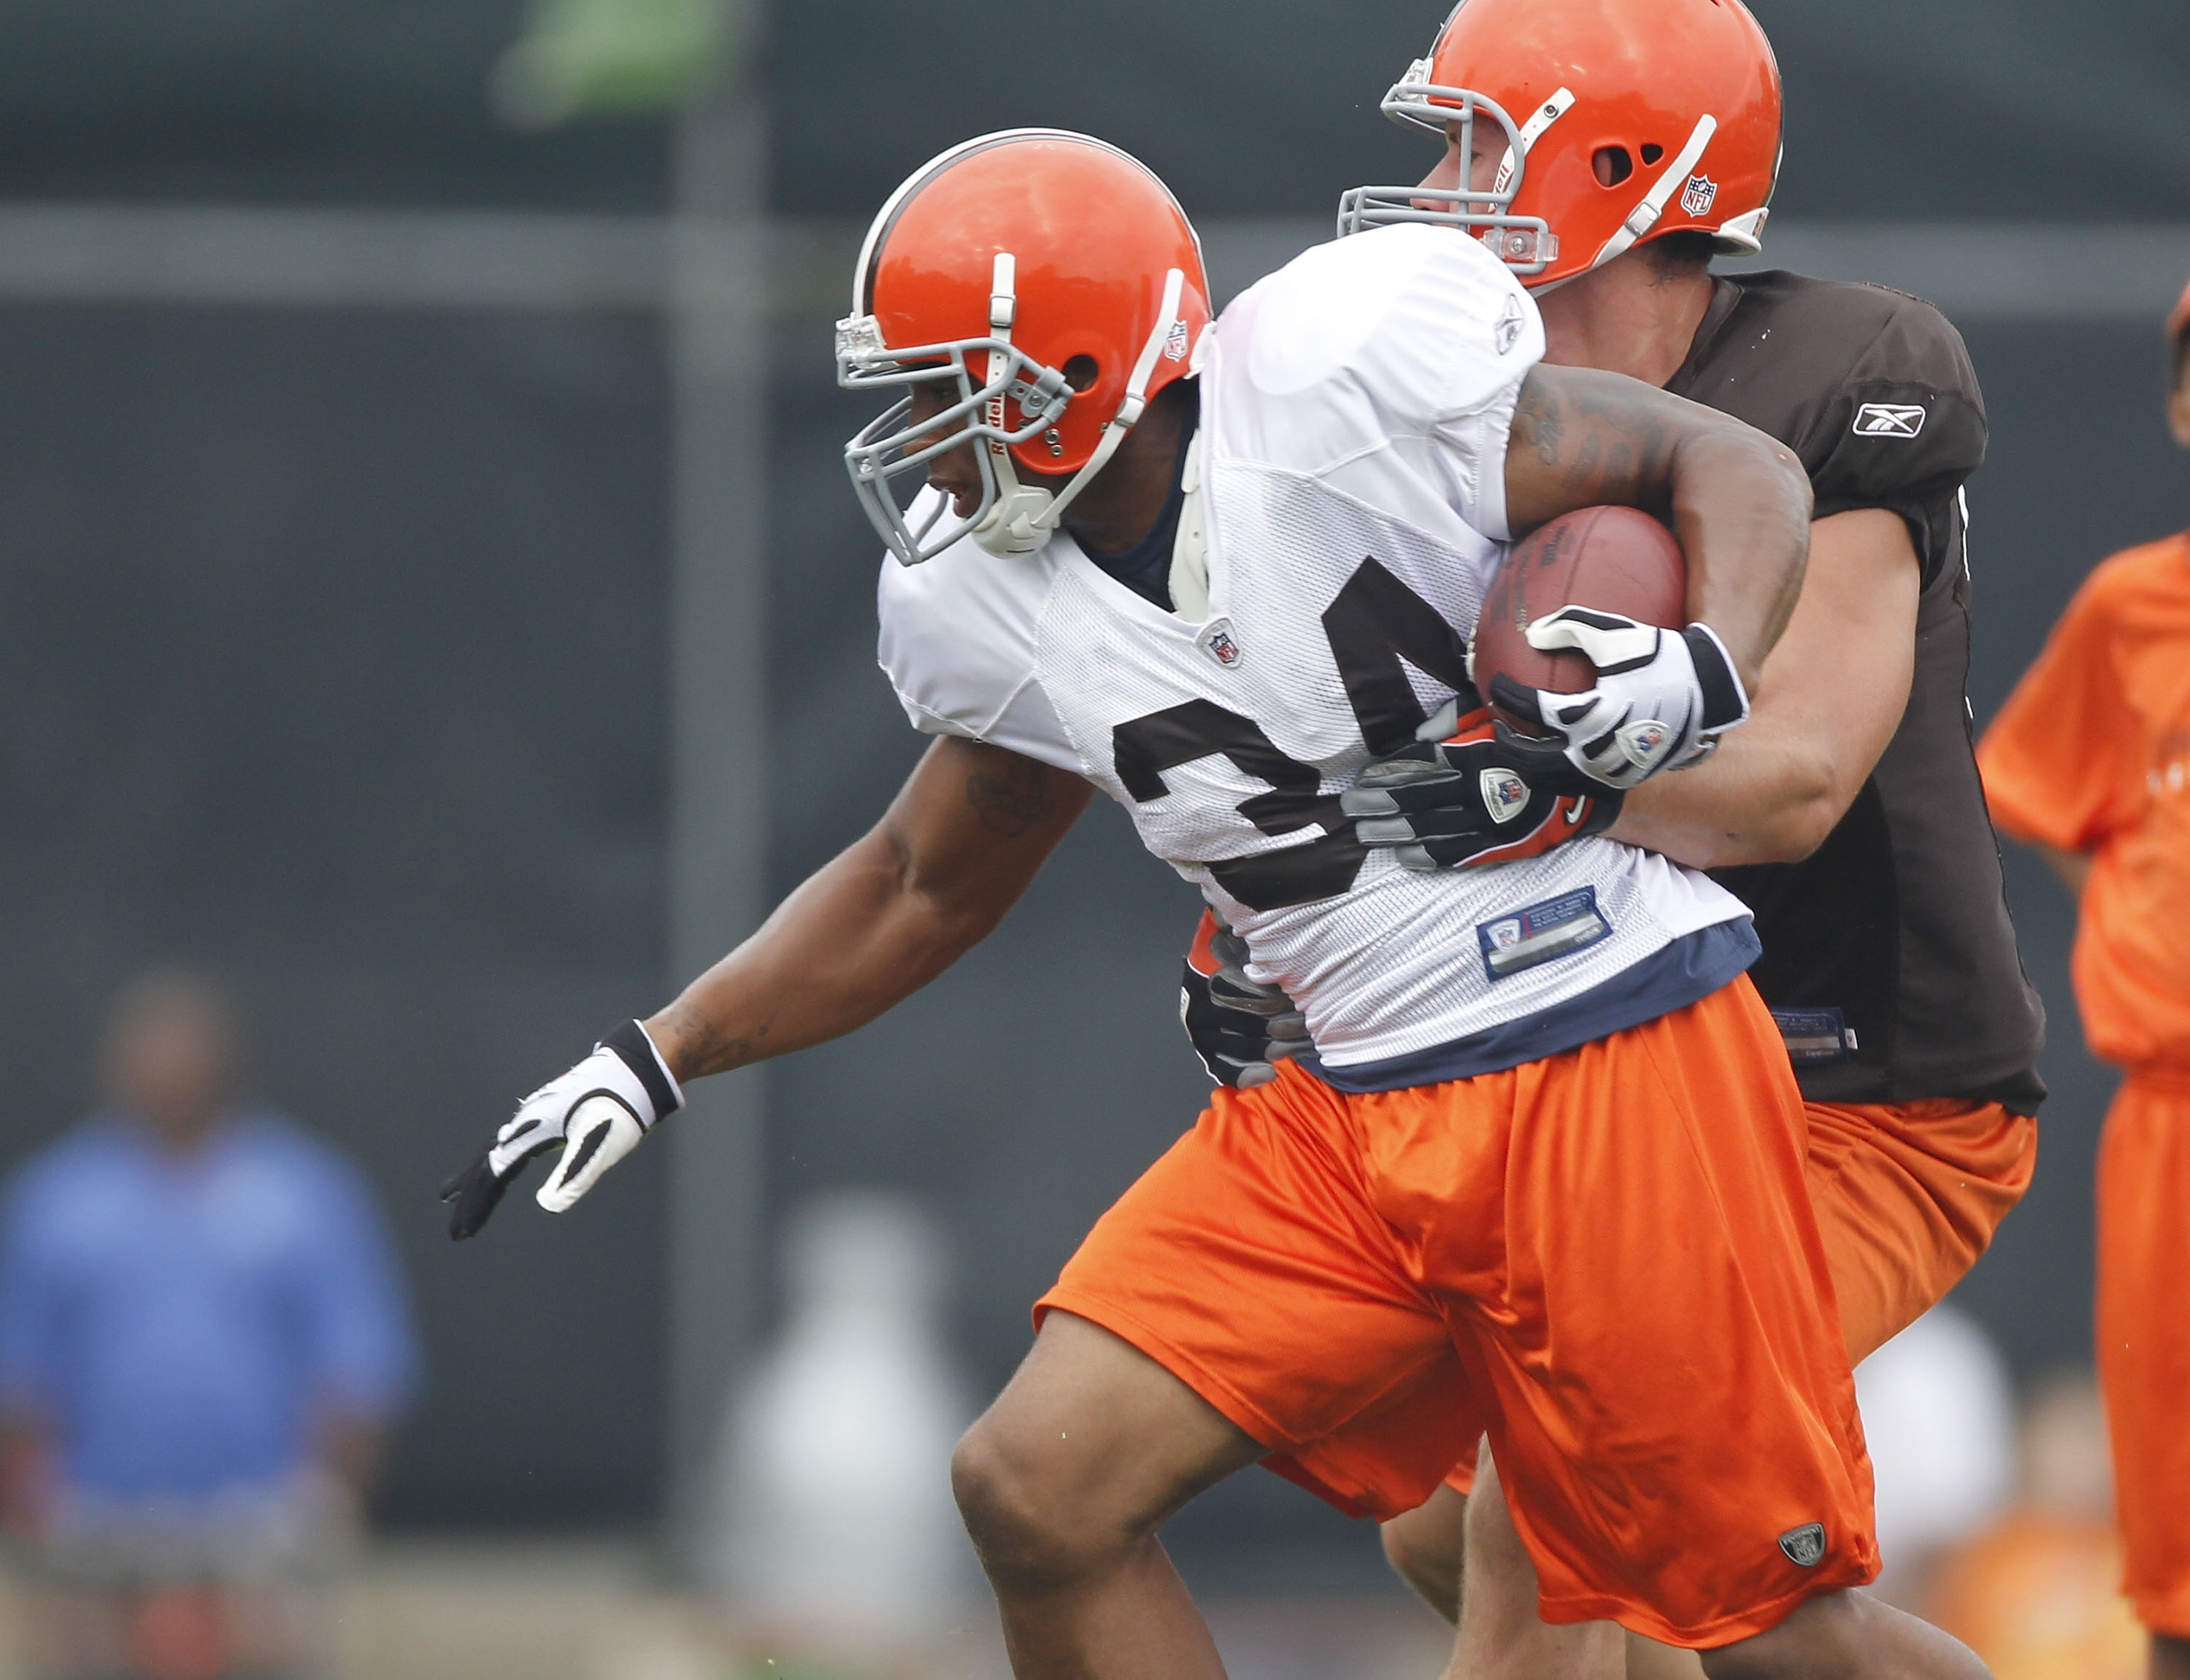 BEREA, OH - AUGUST 04:  Chris Jennings #34 of the Cleveland Browns tries to escape a tackle during training camp at the Cleveland Browns Training and Administrative Complex on August 4, 2010 in Berea, Ohio.  (Photo by Gregory Shamus/Getty Images)